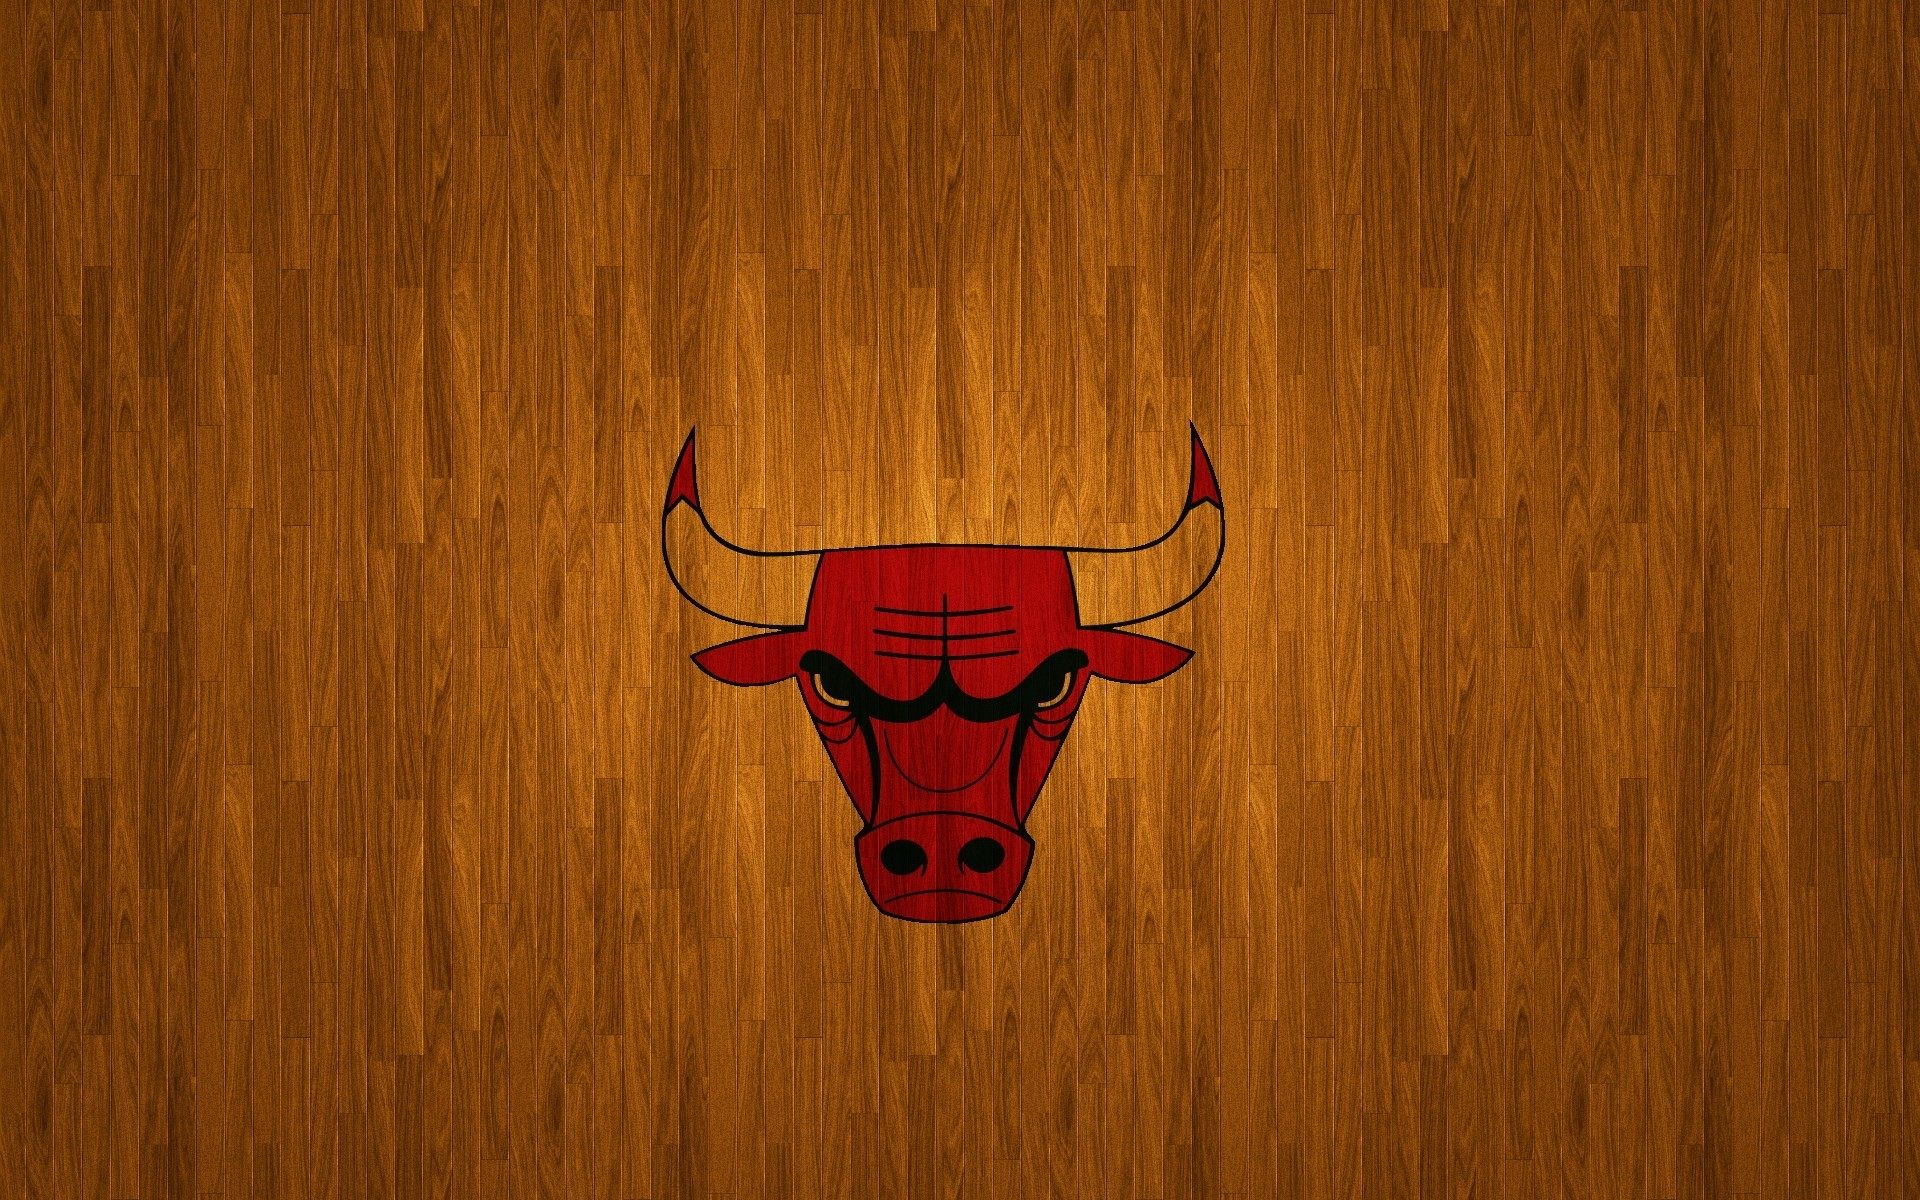 1920x1200 #1859231, chicago bulls category - Free desktop chicago bulls wallpaper